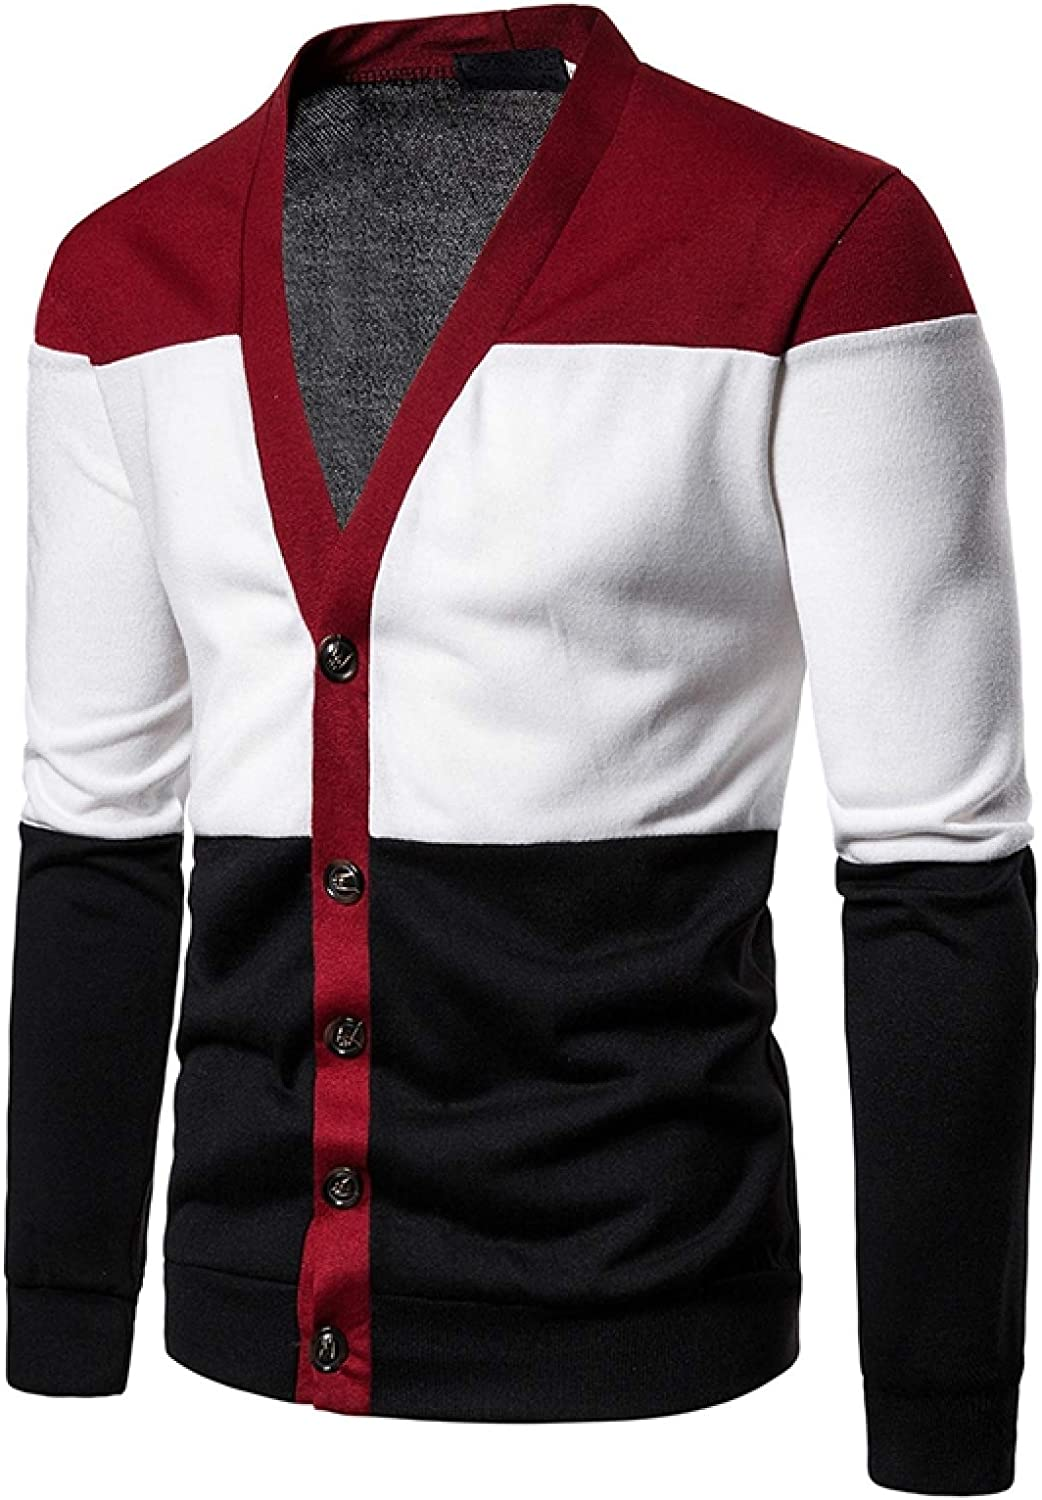 Mens Knitted Sweater Casual Patchwork Deep V Cardigan Pullover Sweatshirt